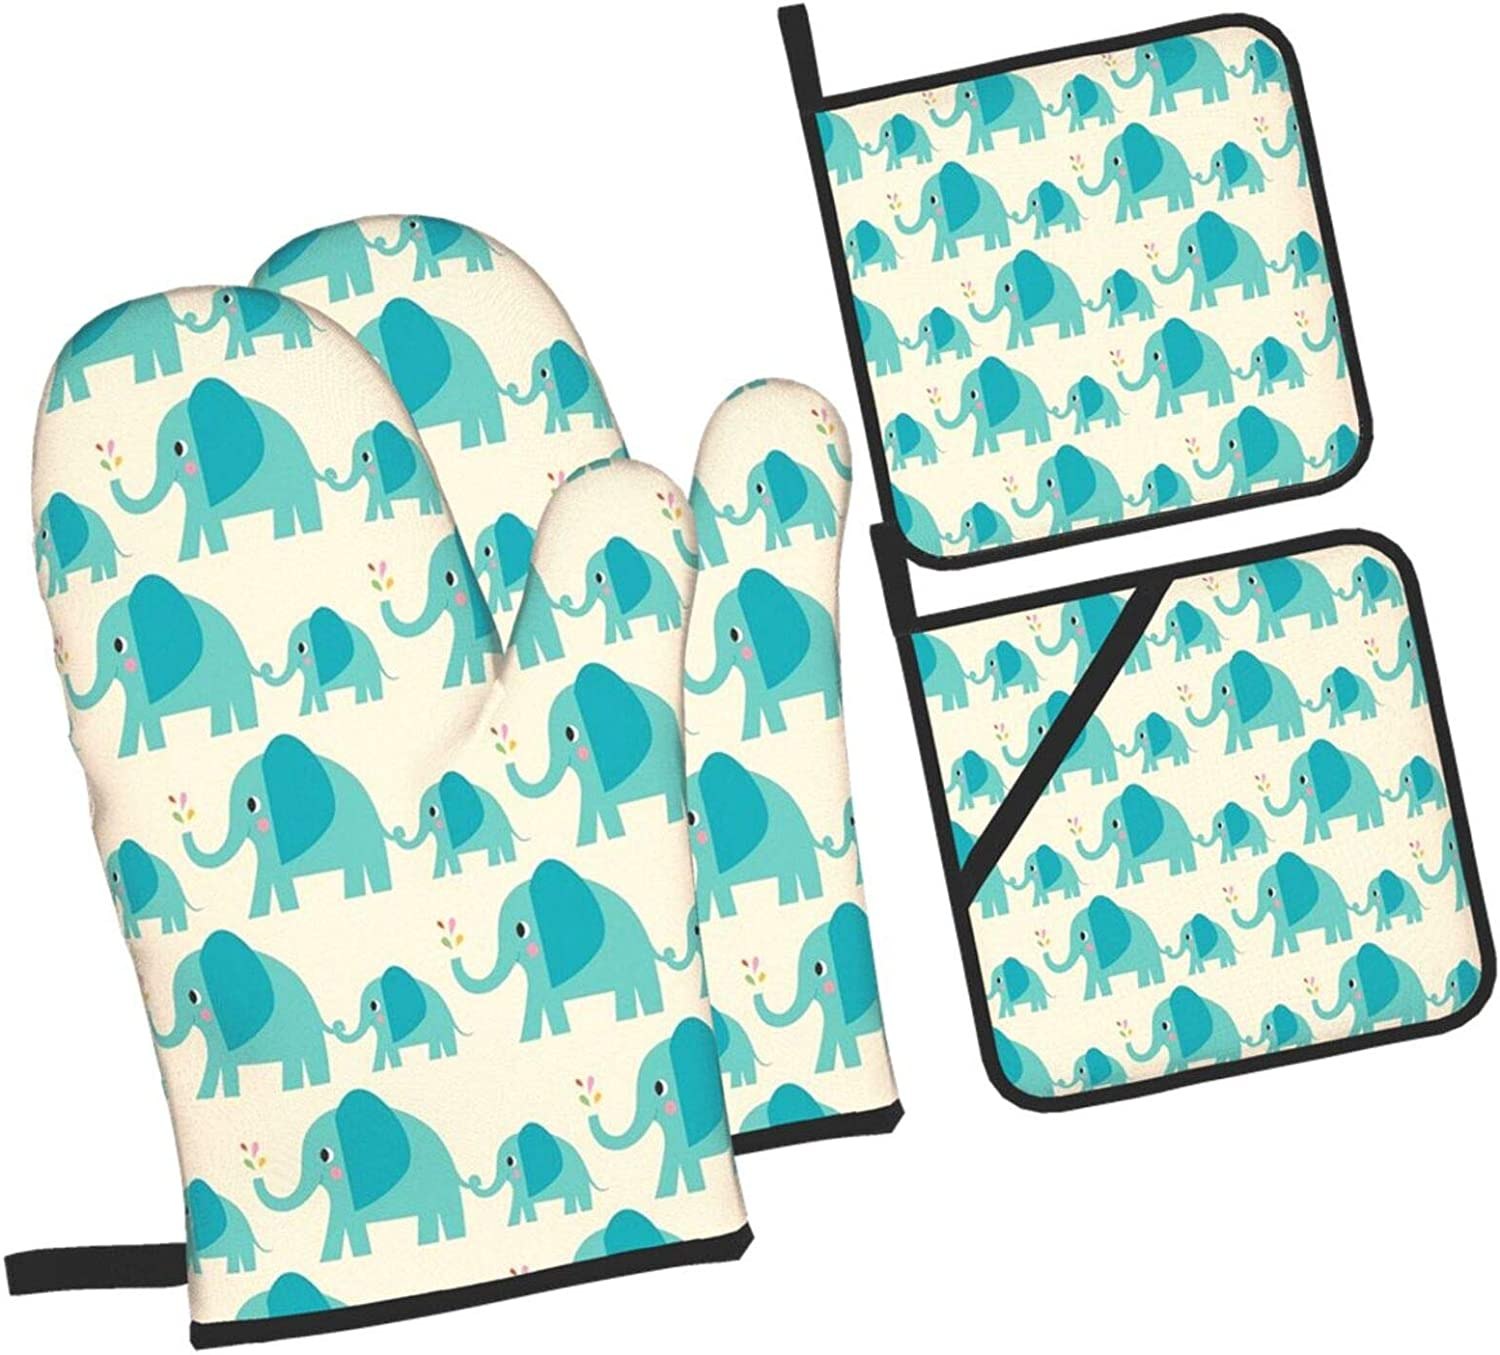 733 Elephant 4 Set of Oven Durable Mitt and Sets Soldering shop Pot Holders